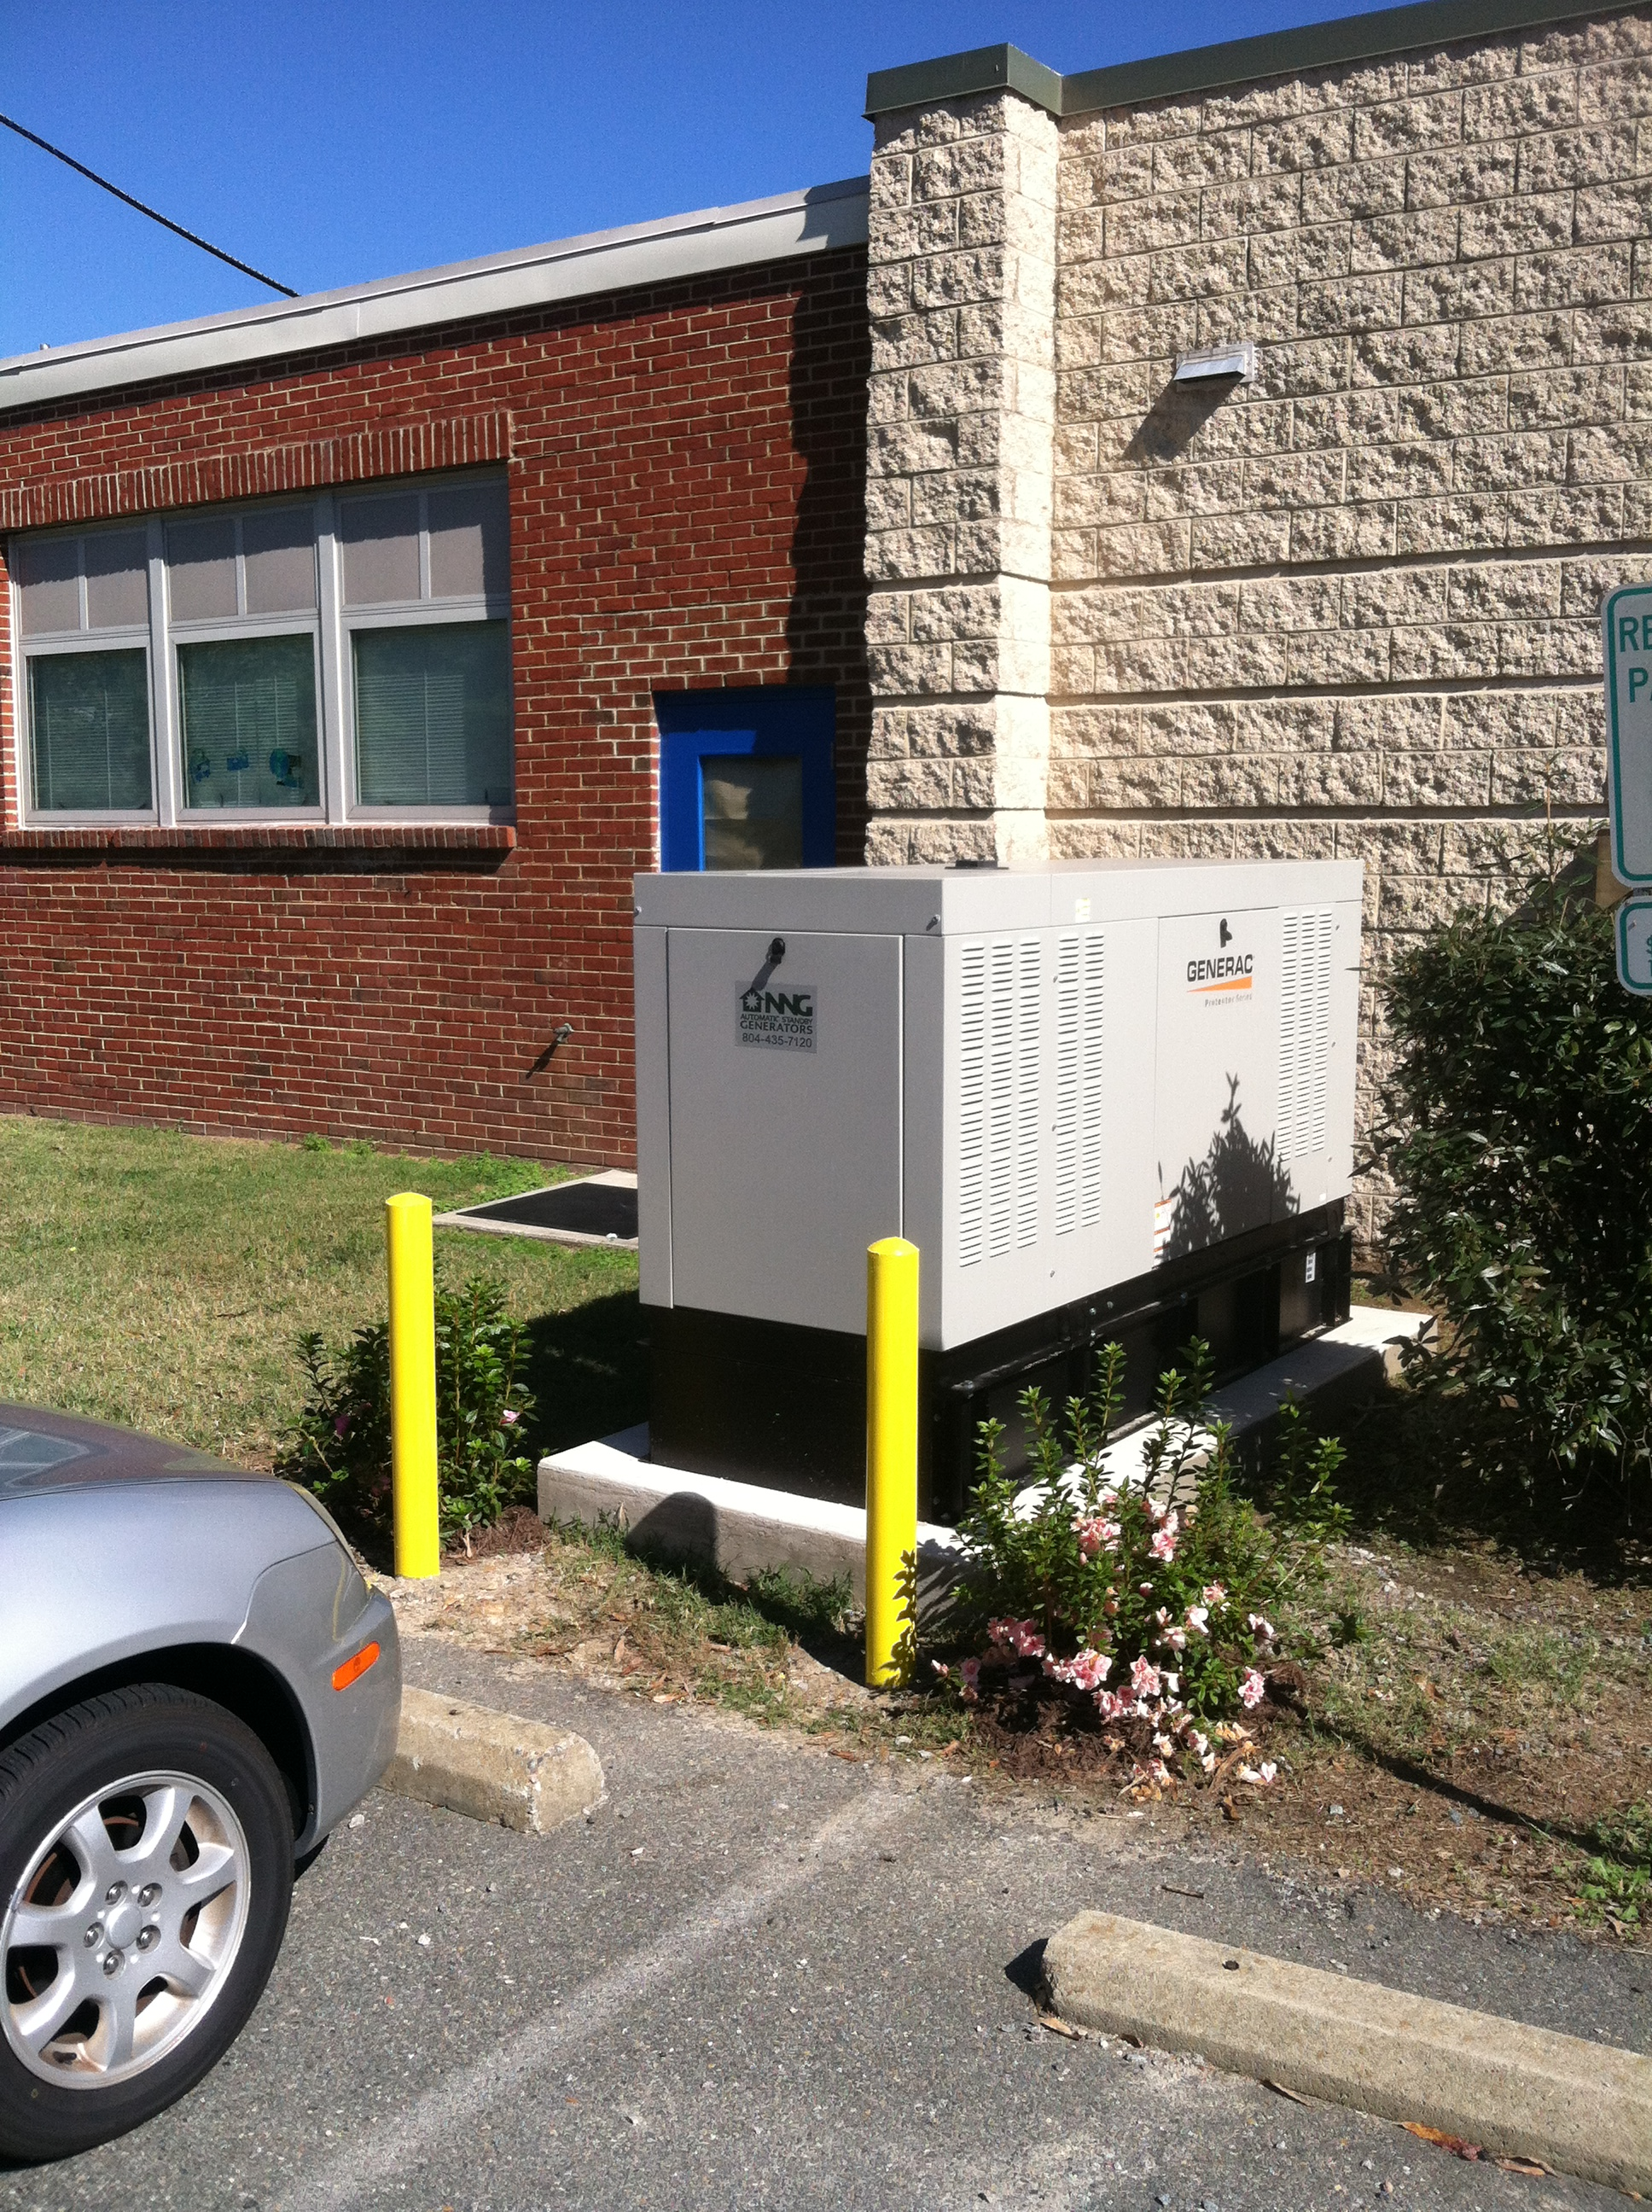 Diesel mercial generac generator on es county school board